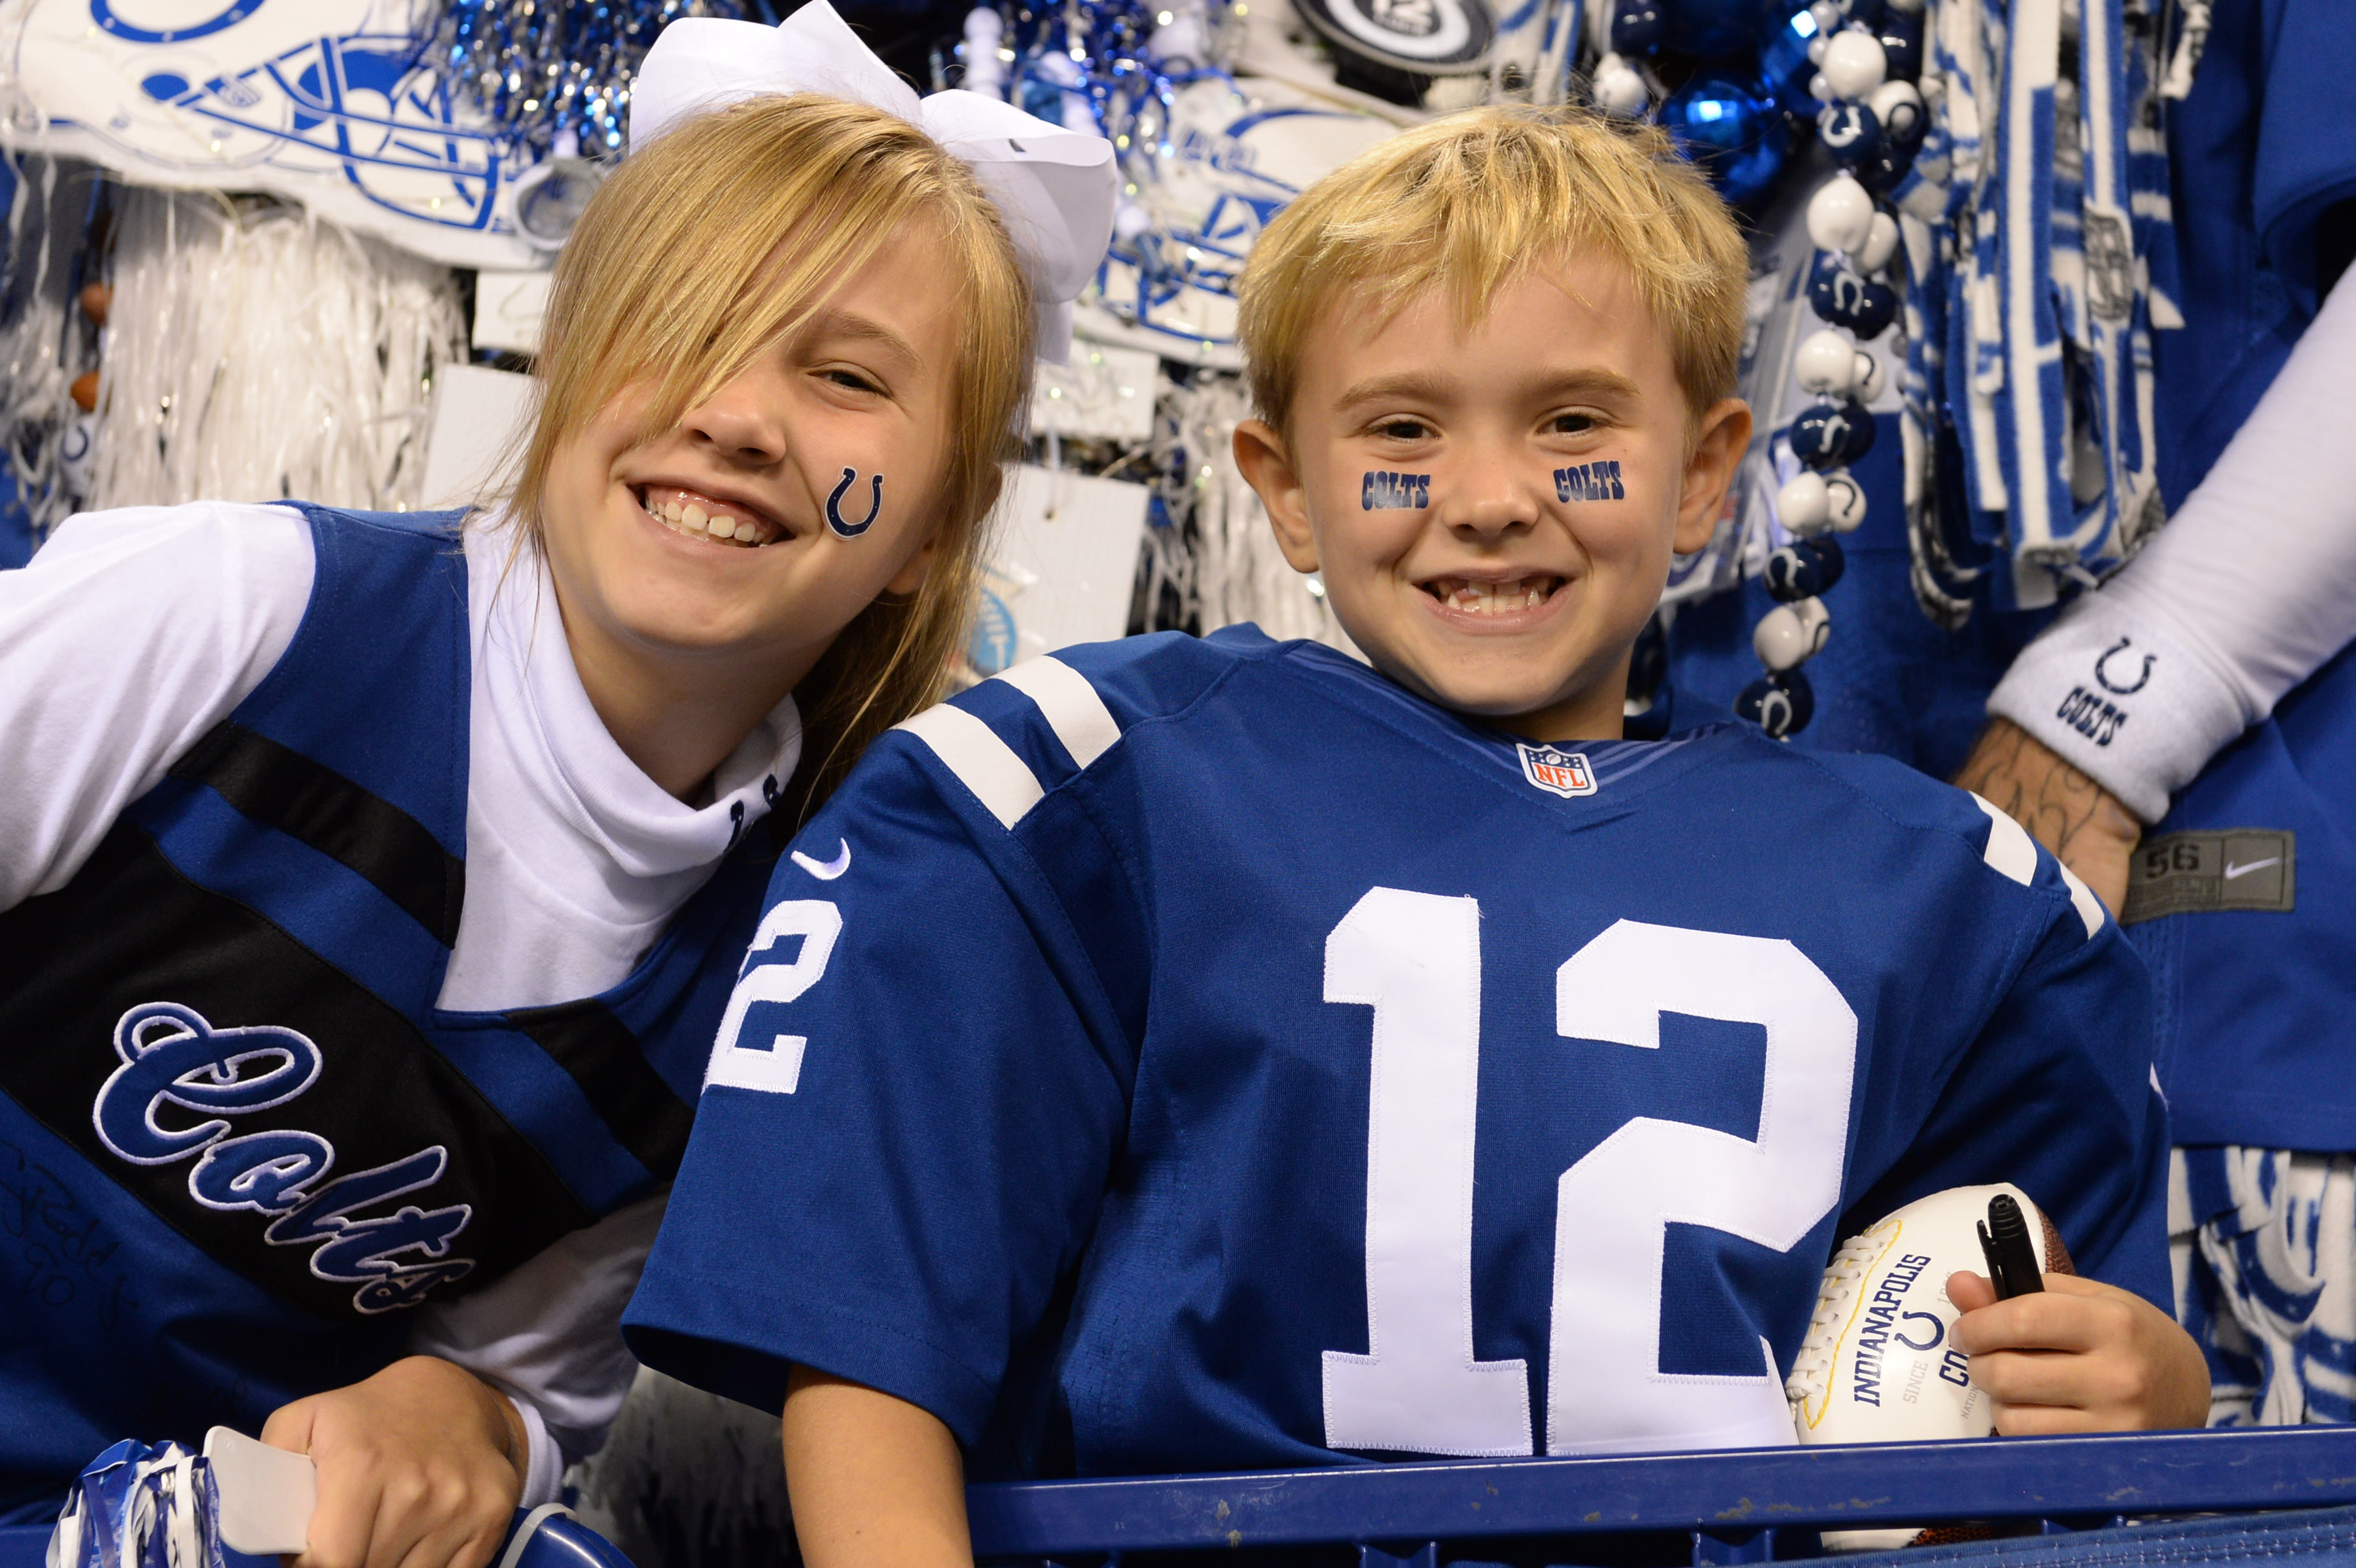 Become a member of one of the Official Colts Fan Clubs